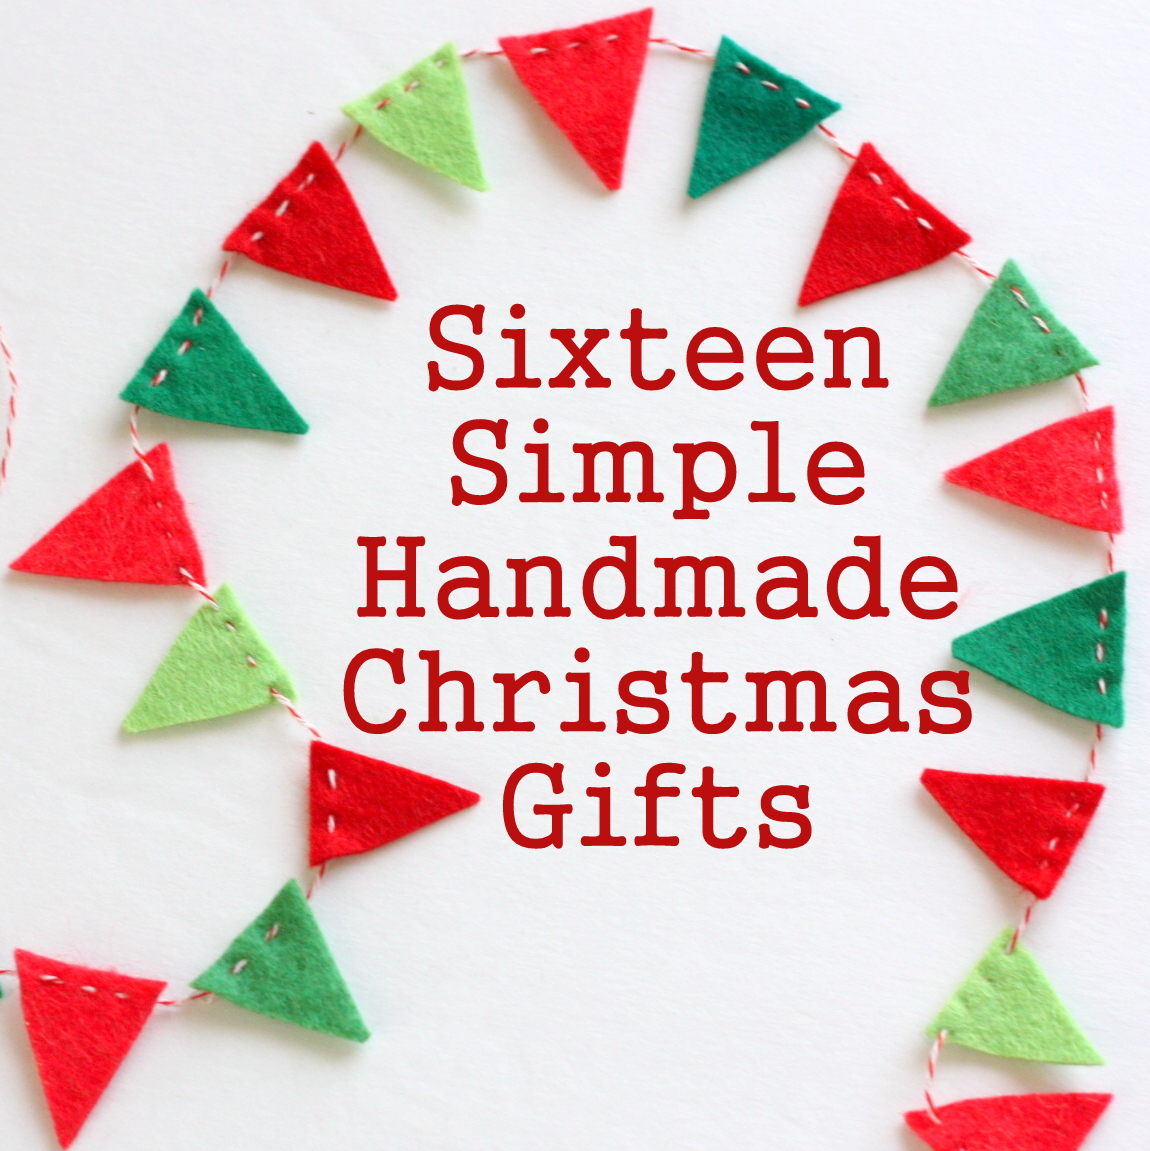 Easy Craft Ideas For Christmas Gifts Part - 15: 16 Simple Handmade Christmas Gift Tutorials